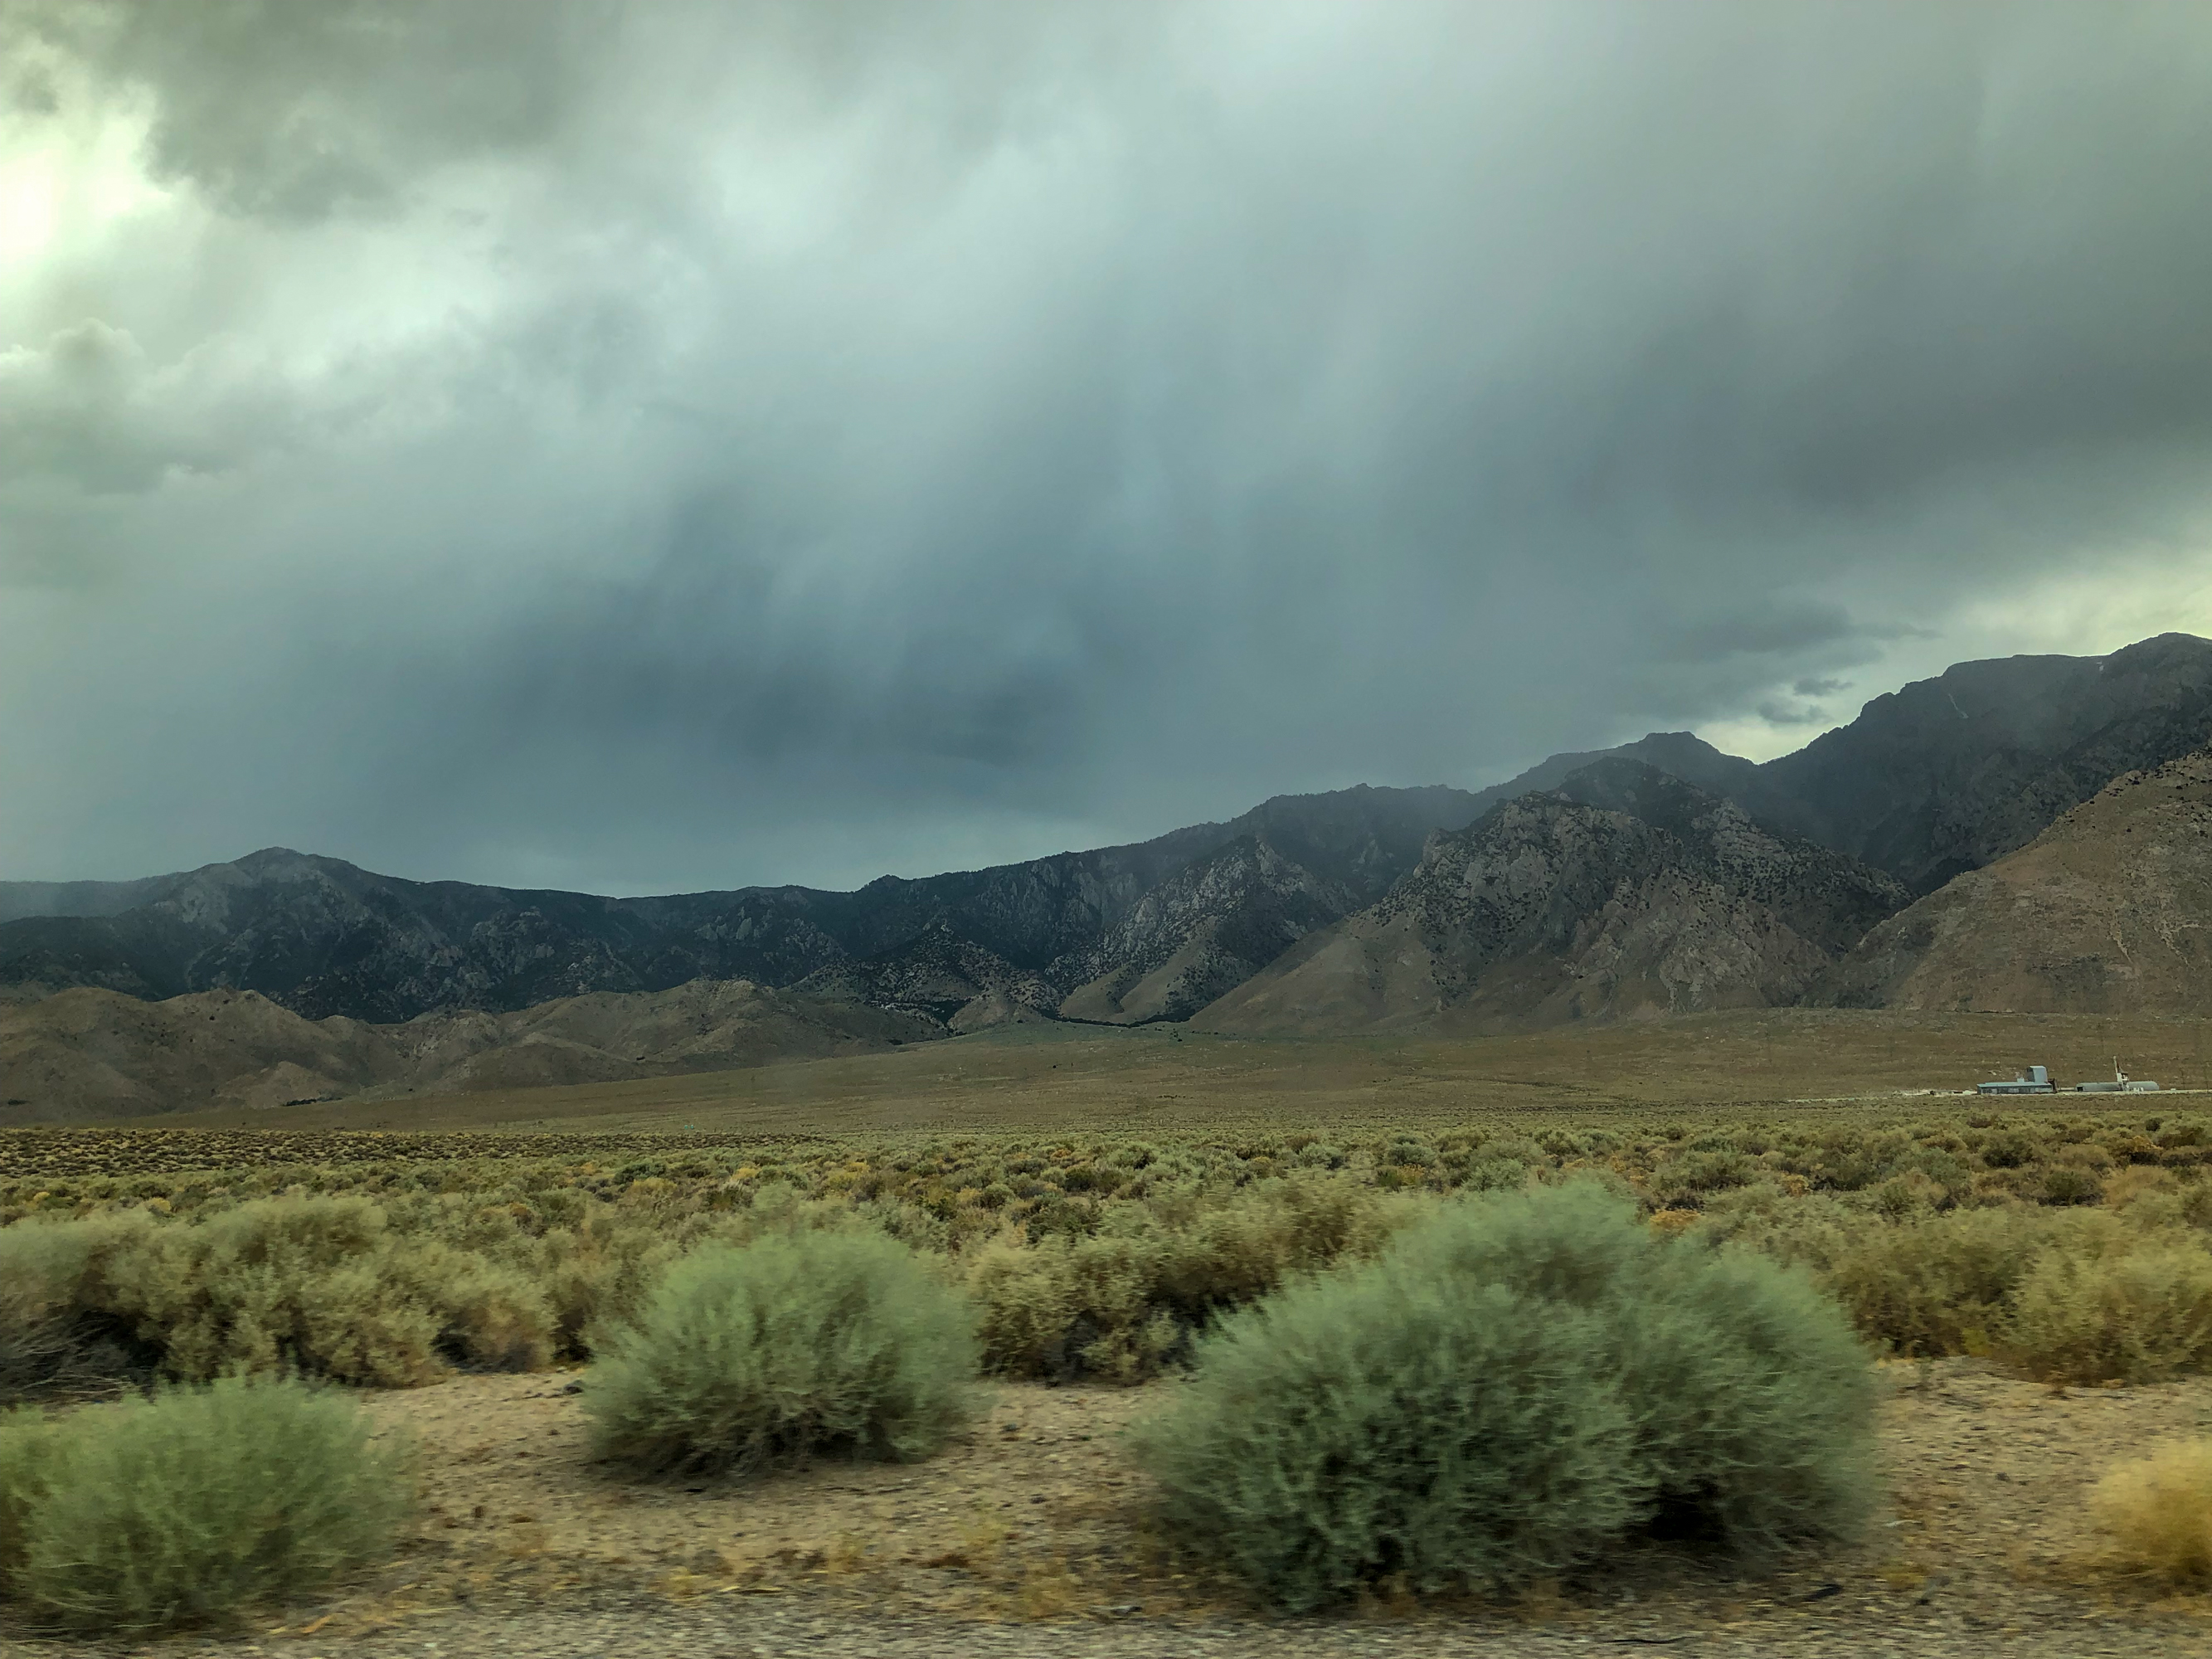 Storm clouds roll over the Sierra Nevada Mountains.